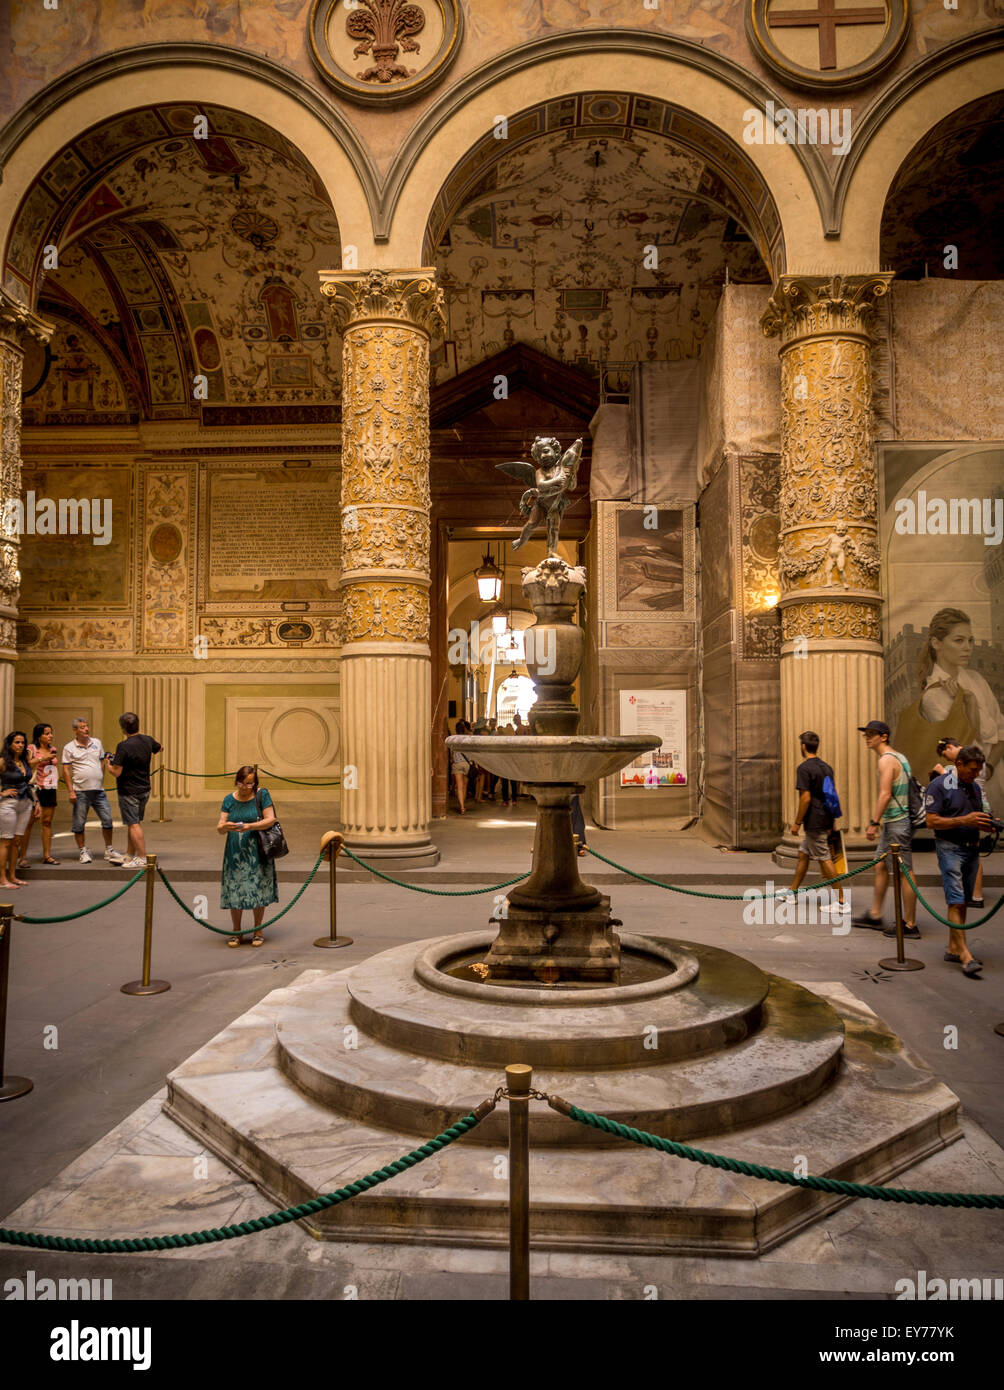 """Putto with Dolphin fountain inside First courtyard """"Palazzo Vecchio"""". Florence, italy. Stock Photo"""